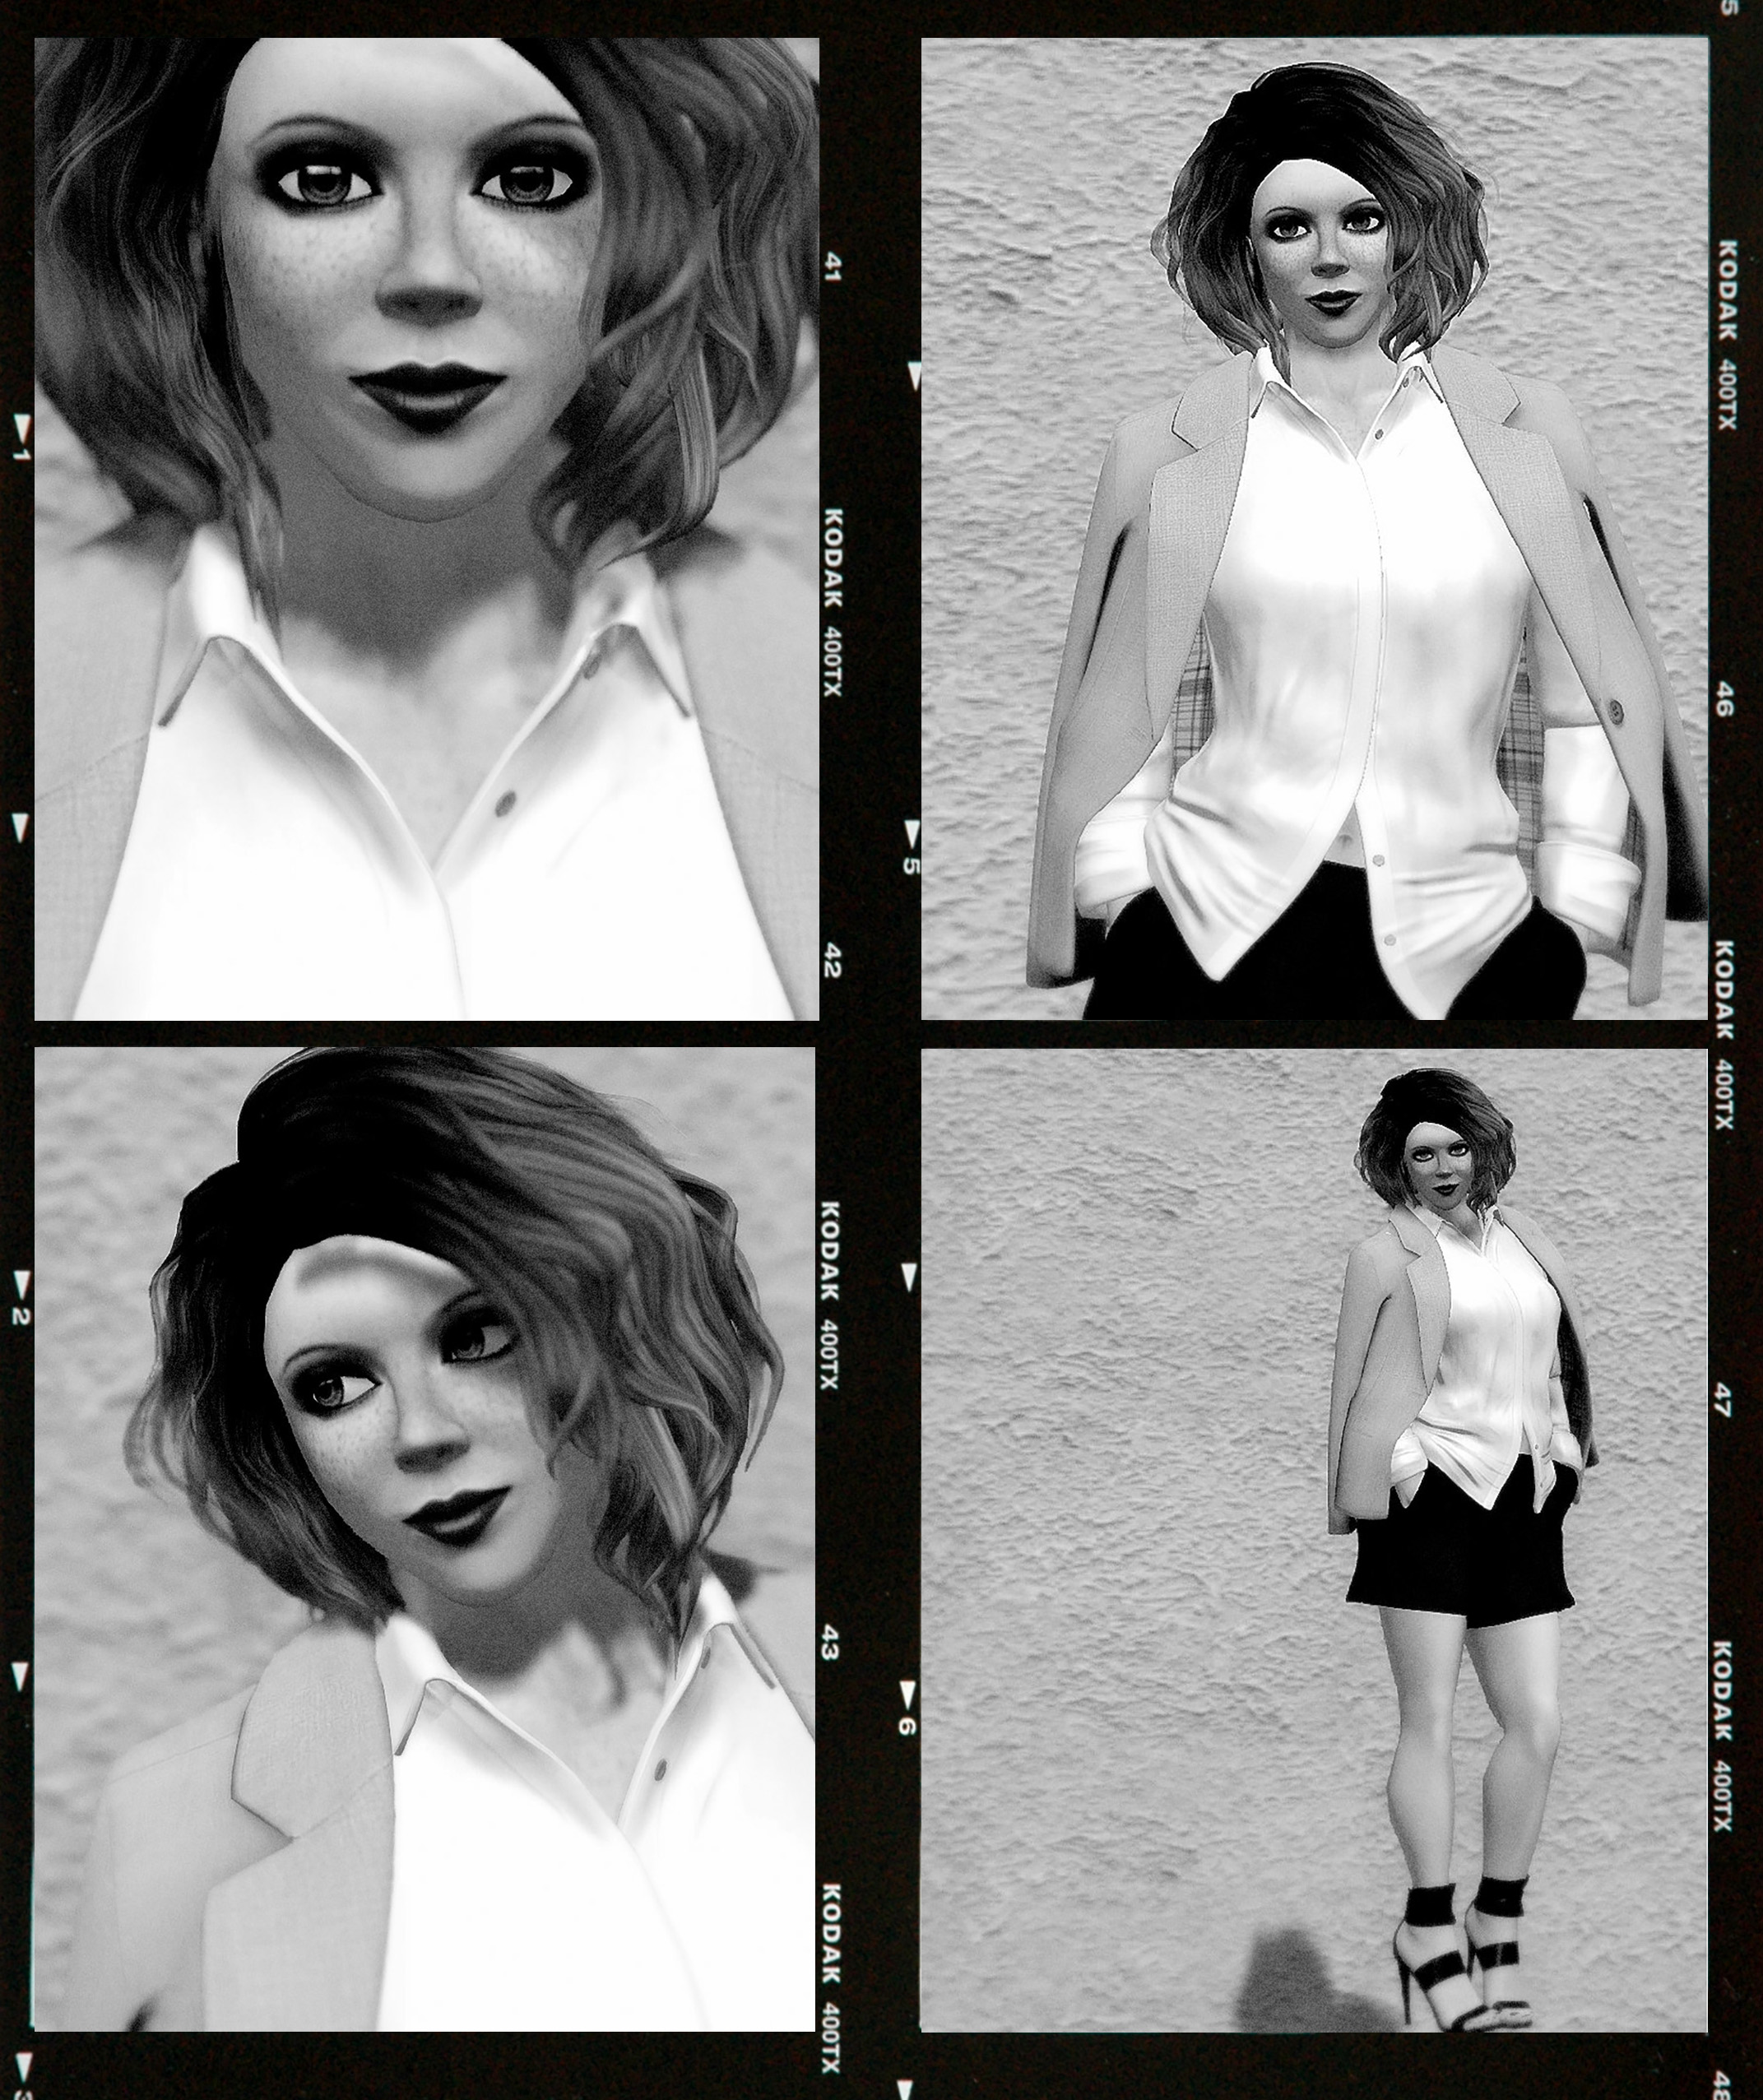 Contact sheet of 4 B&W frames, portraits of Vanessa Blaylock on Kodak TMax 400